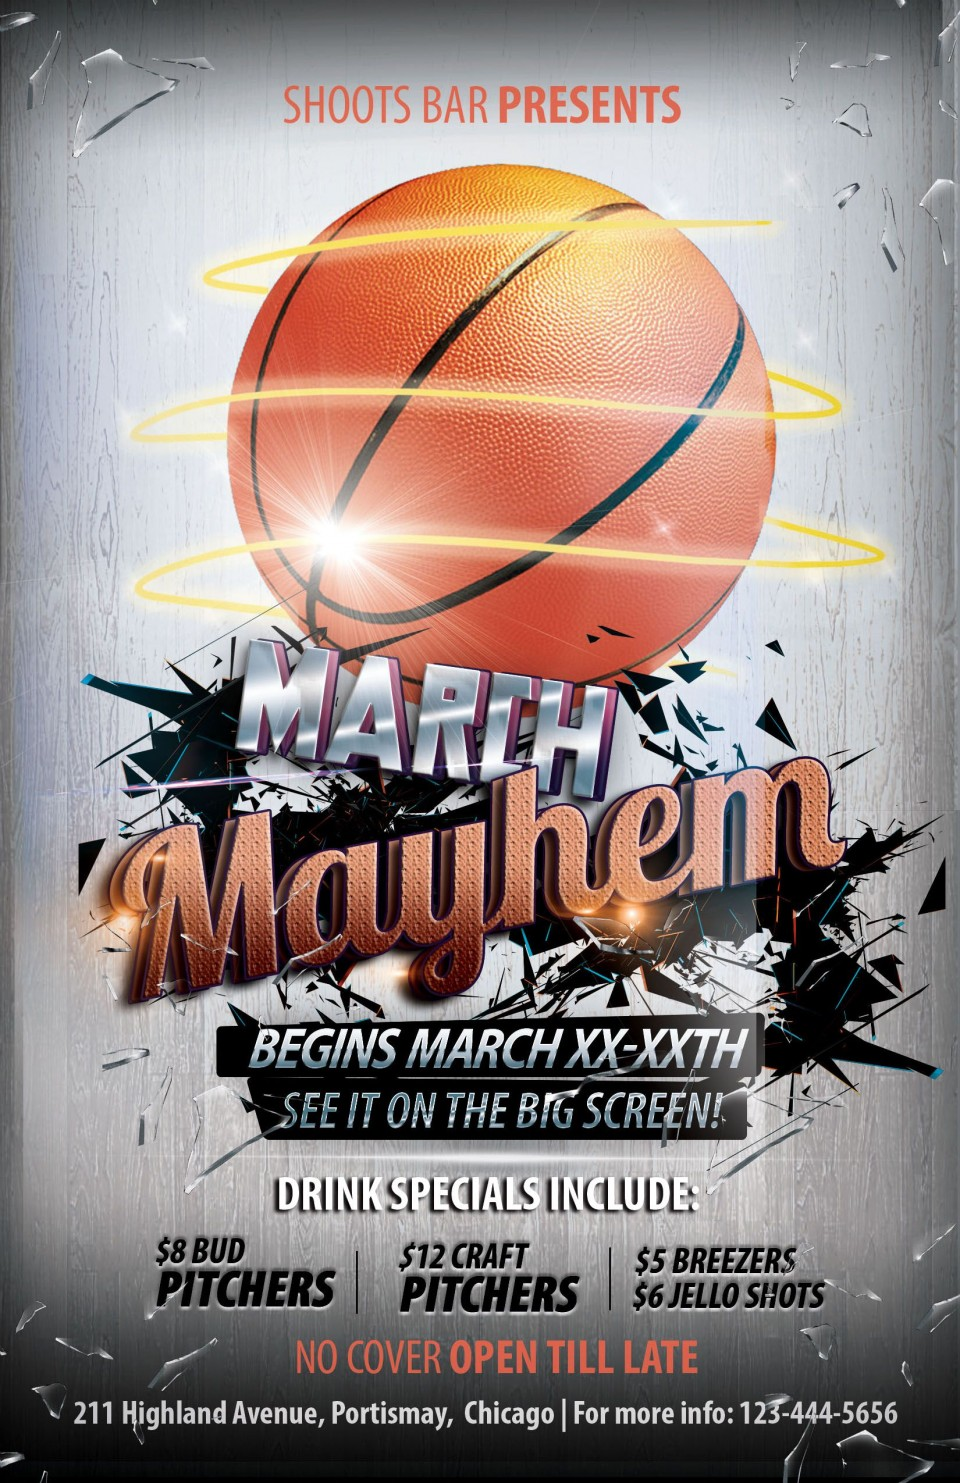 005 Simple Basketball Flyer Template Free Highest Clarity  Brochure Tryout Camp960